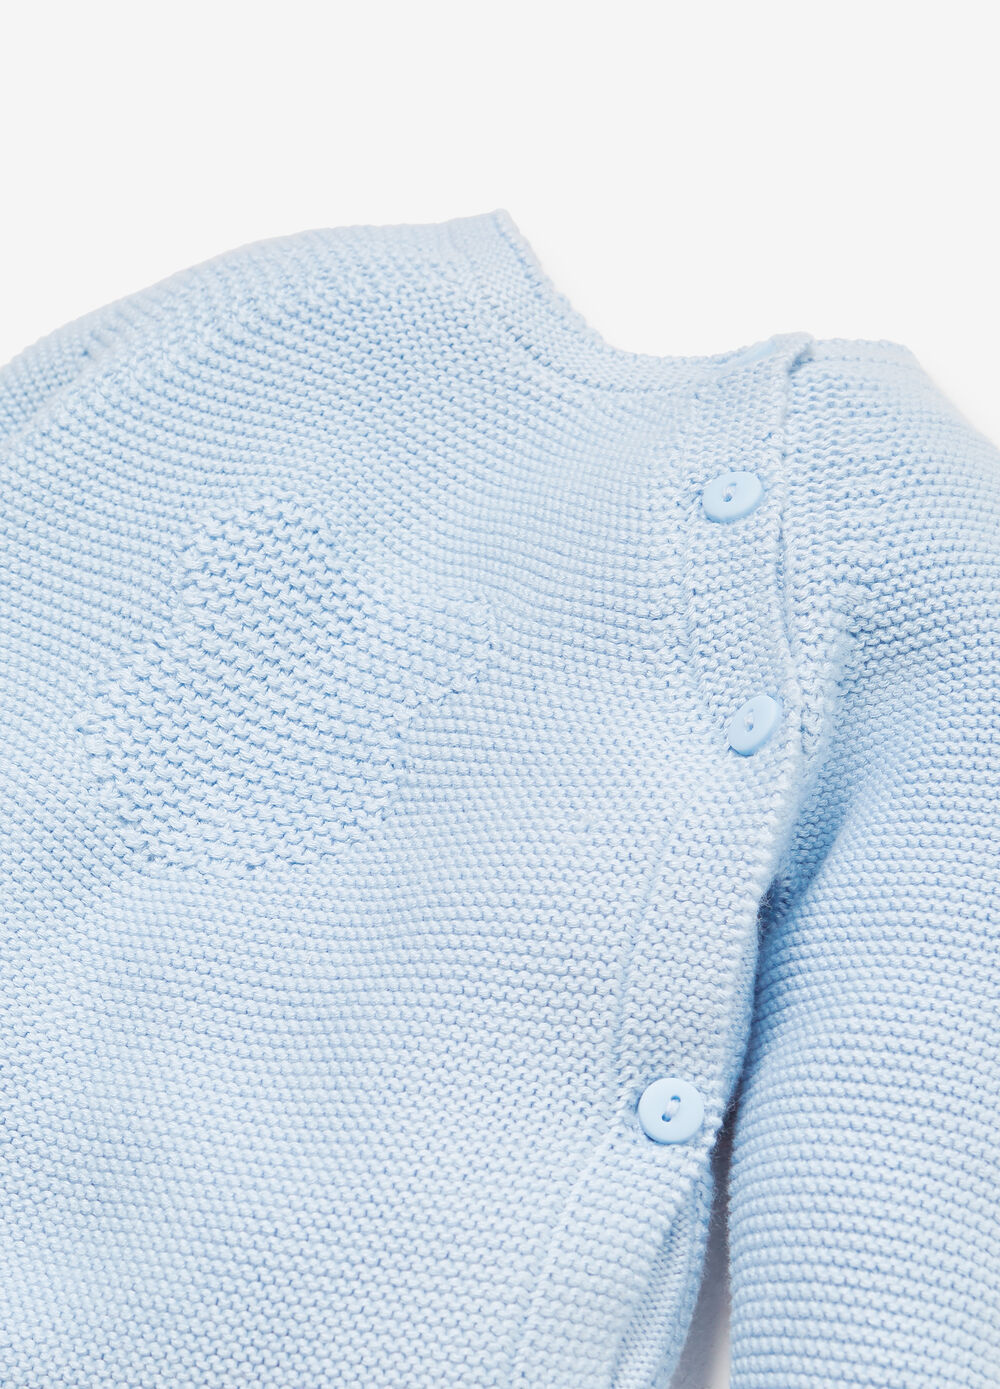 BCI cotton and viscose pullover